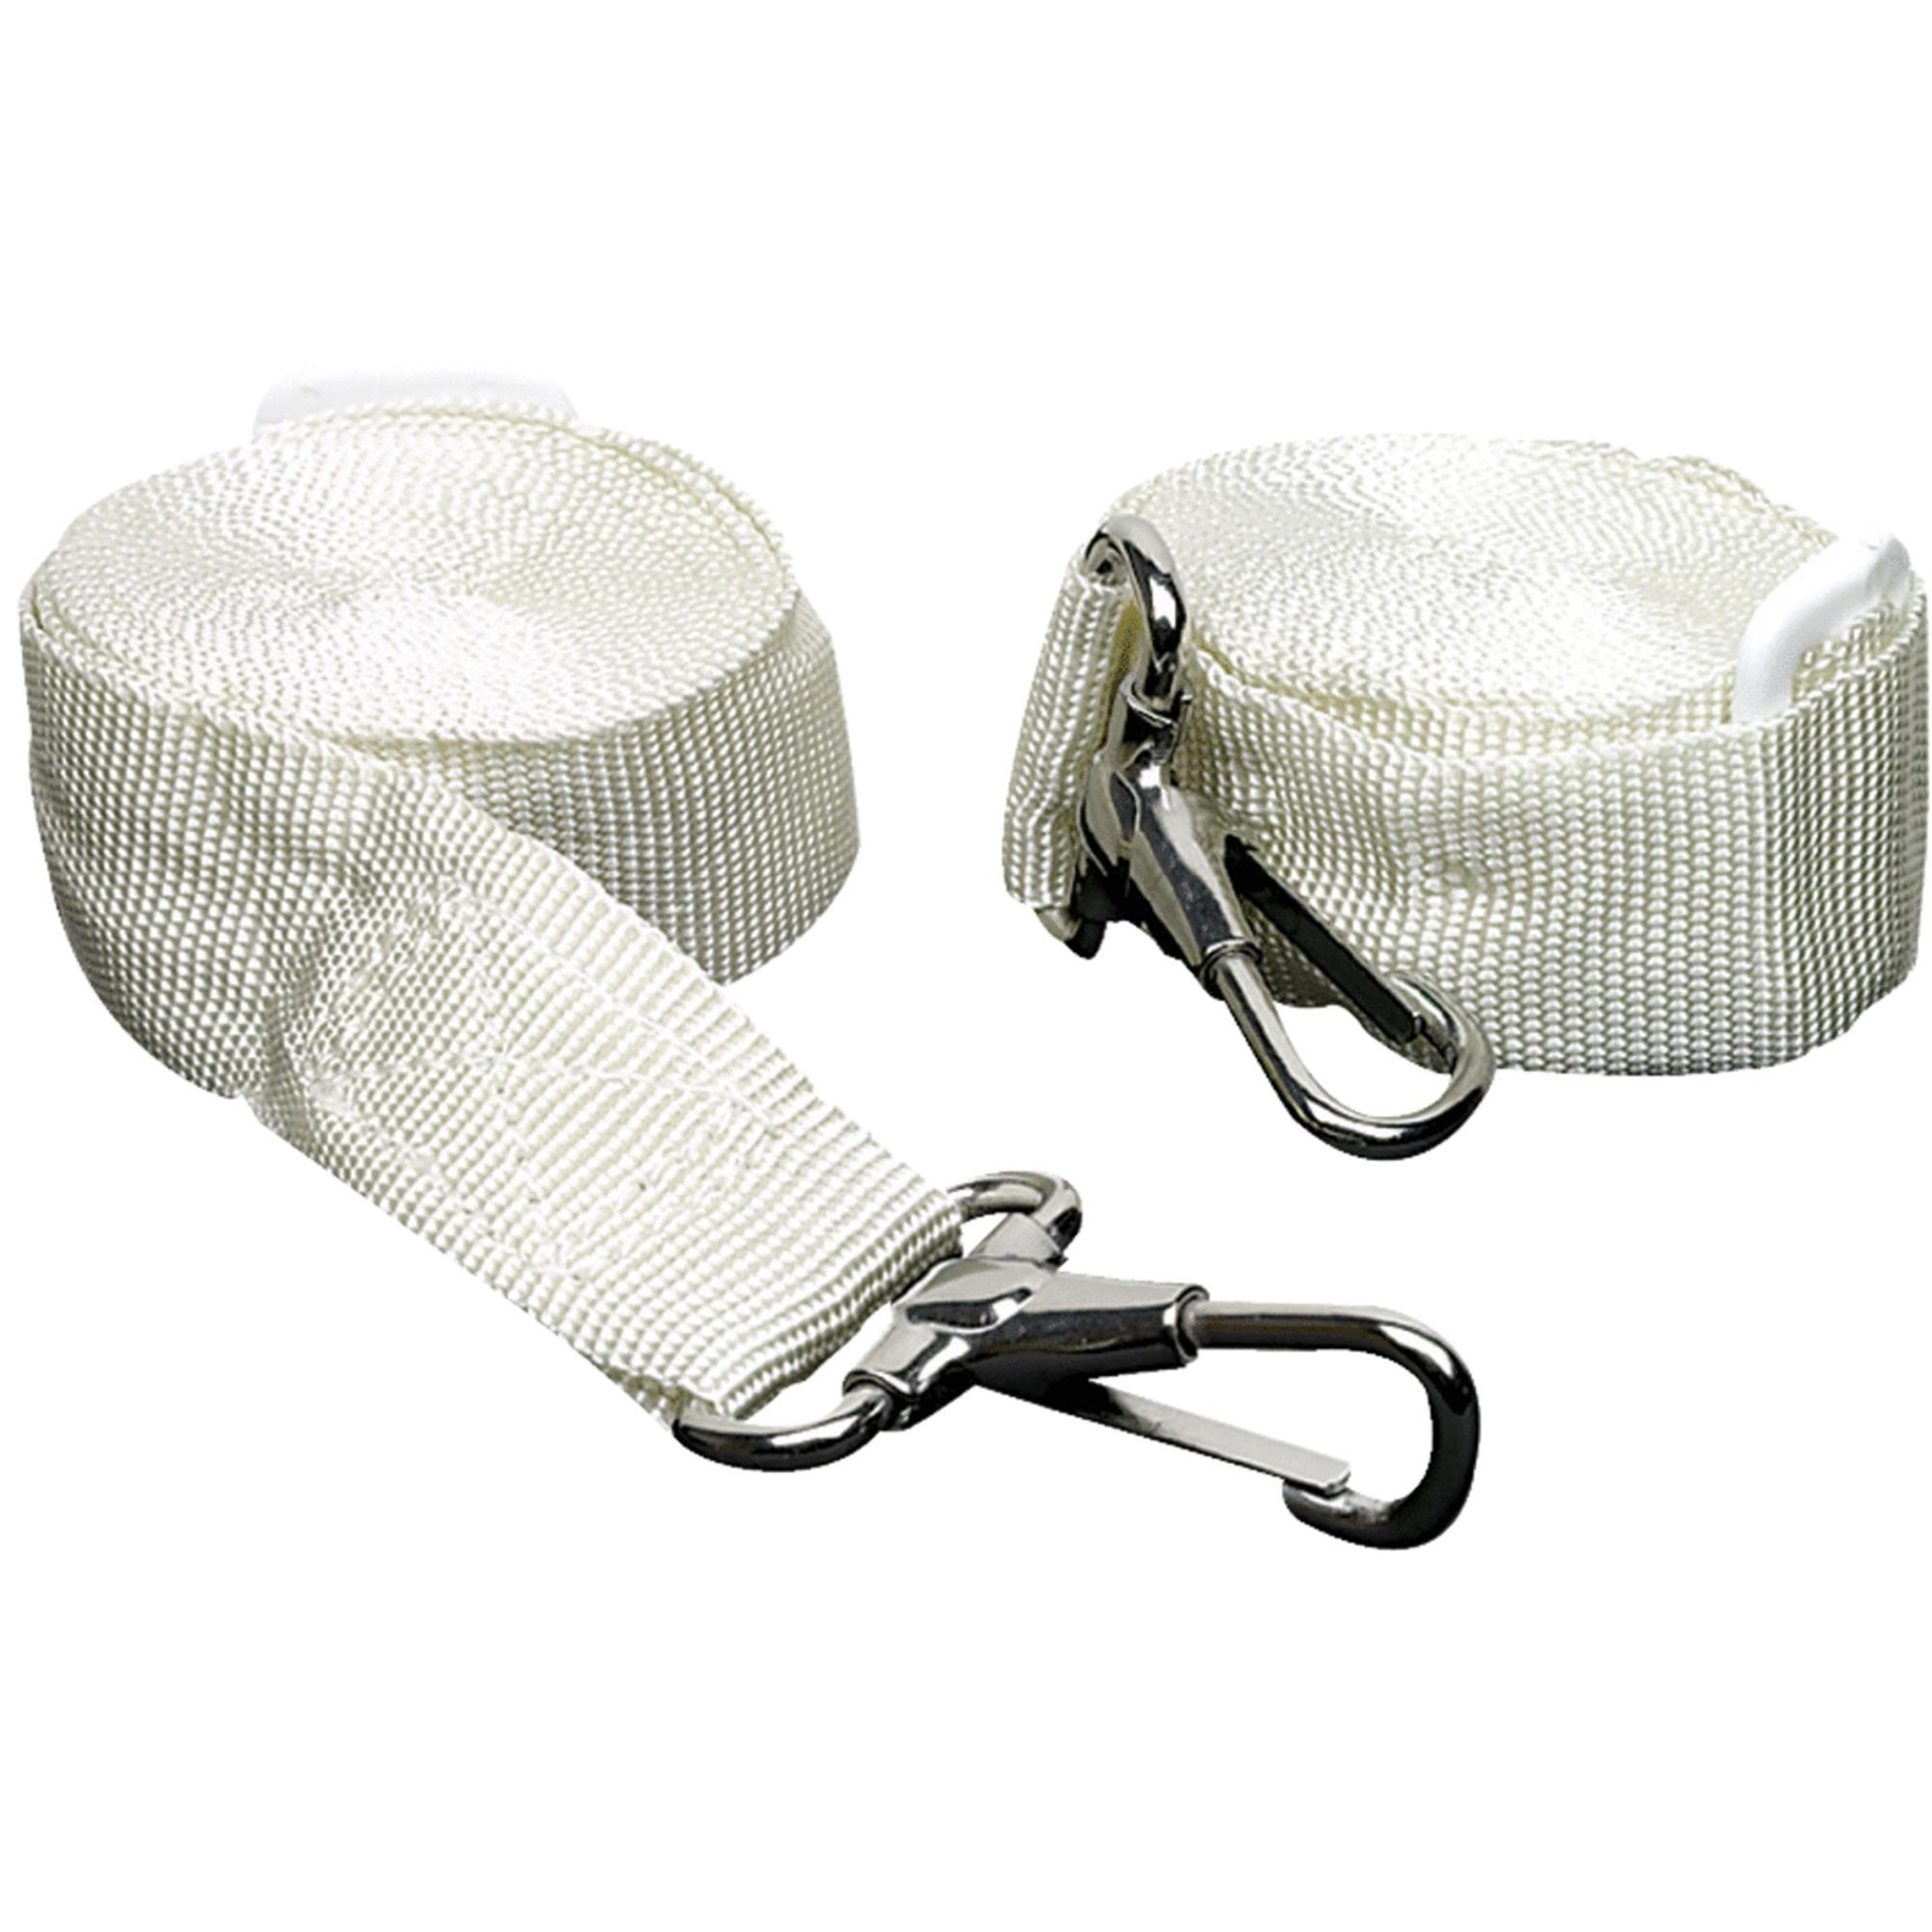 "Seachoice Bimini Top Straps, Adjustable to 96"", 2pk"